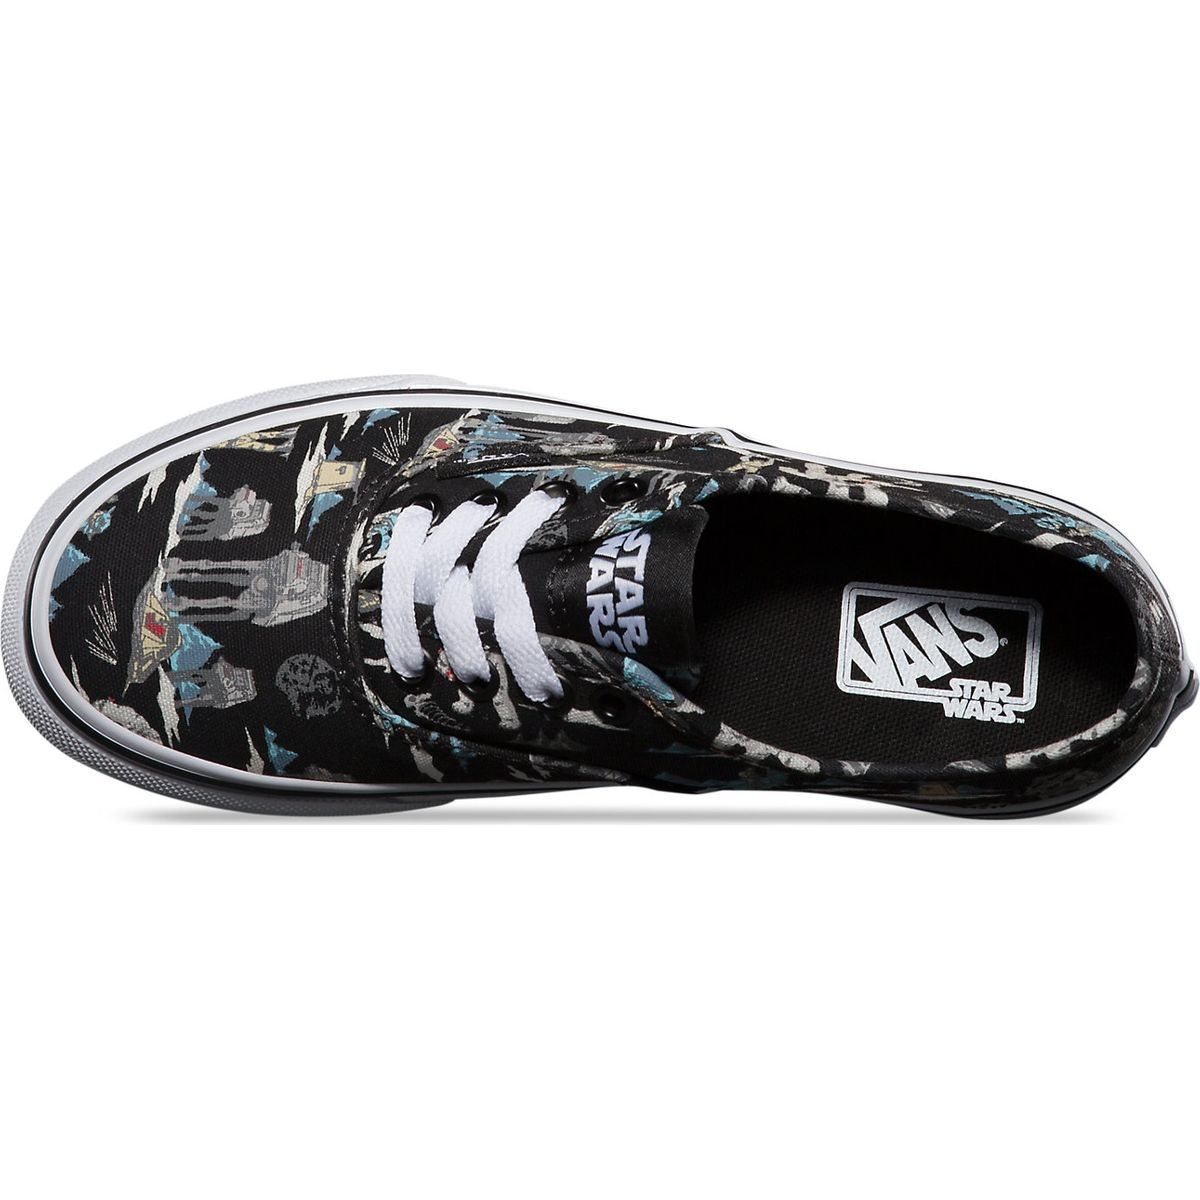 vans star wars authentic youth shoes $ 16 78 $ 41 95 select color